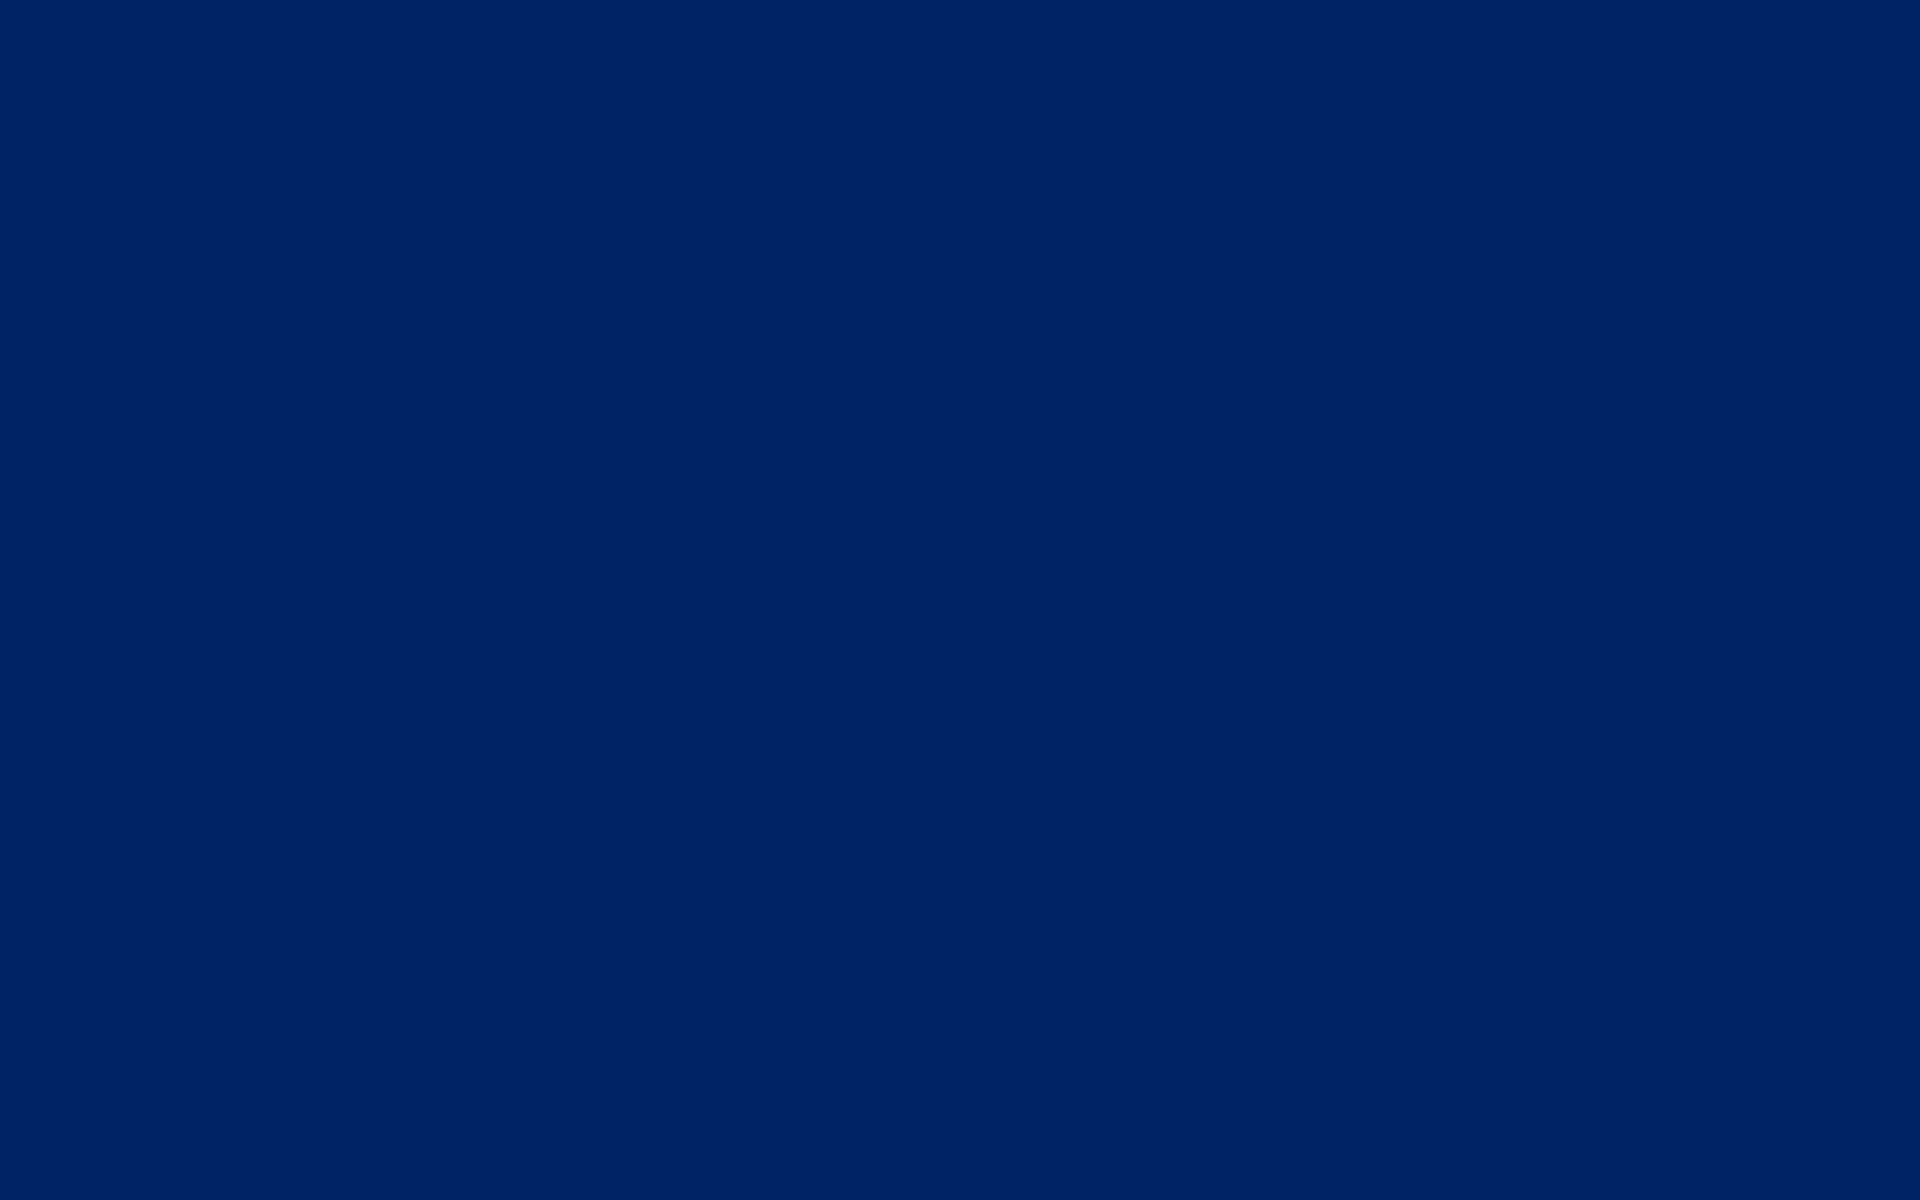 Royal Blue Traditional Solid Color Background